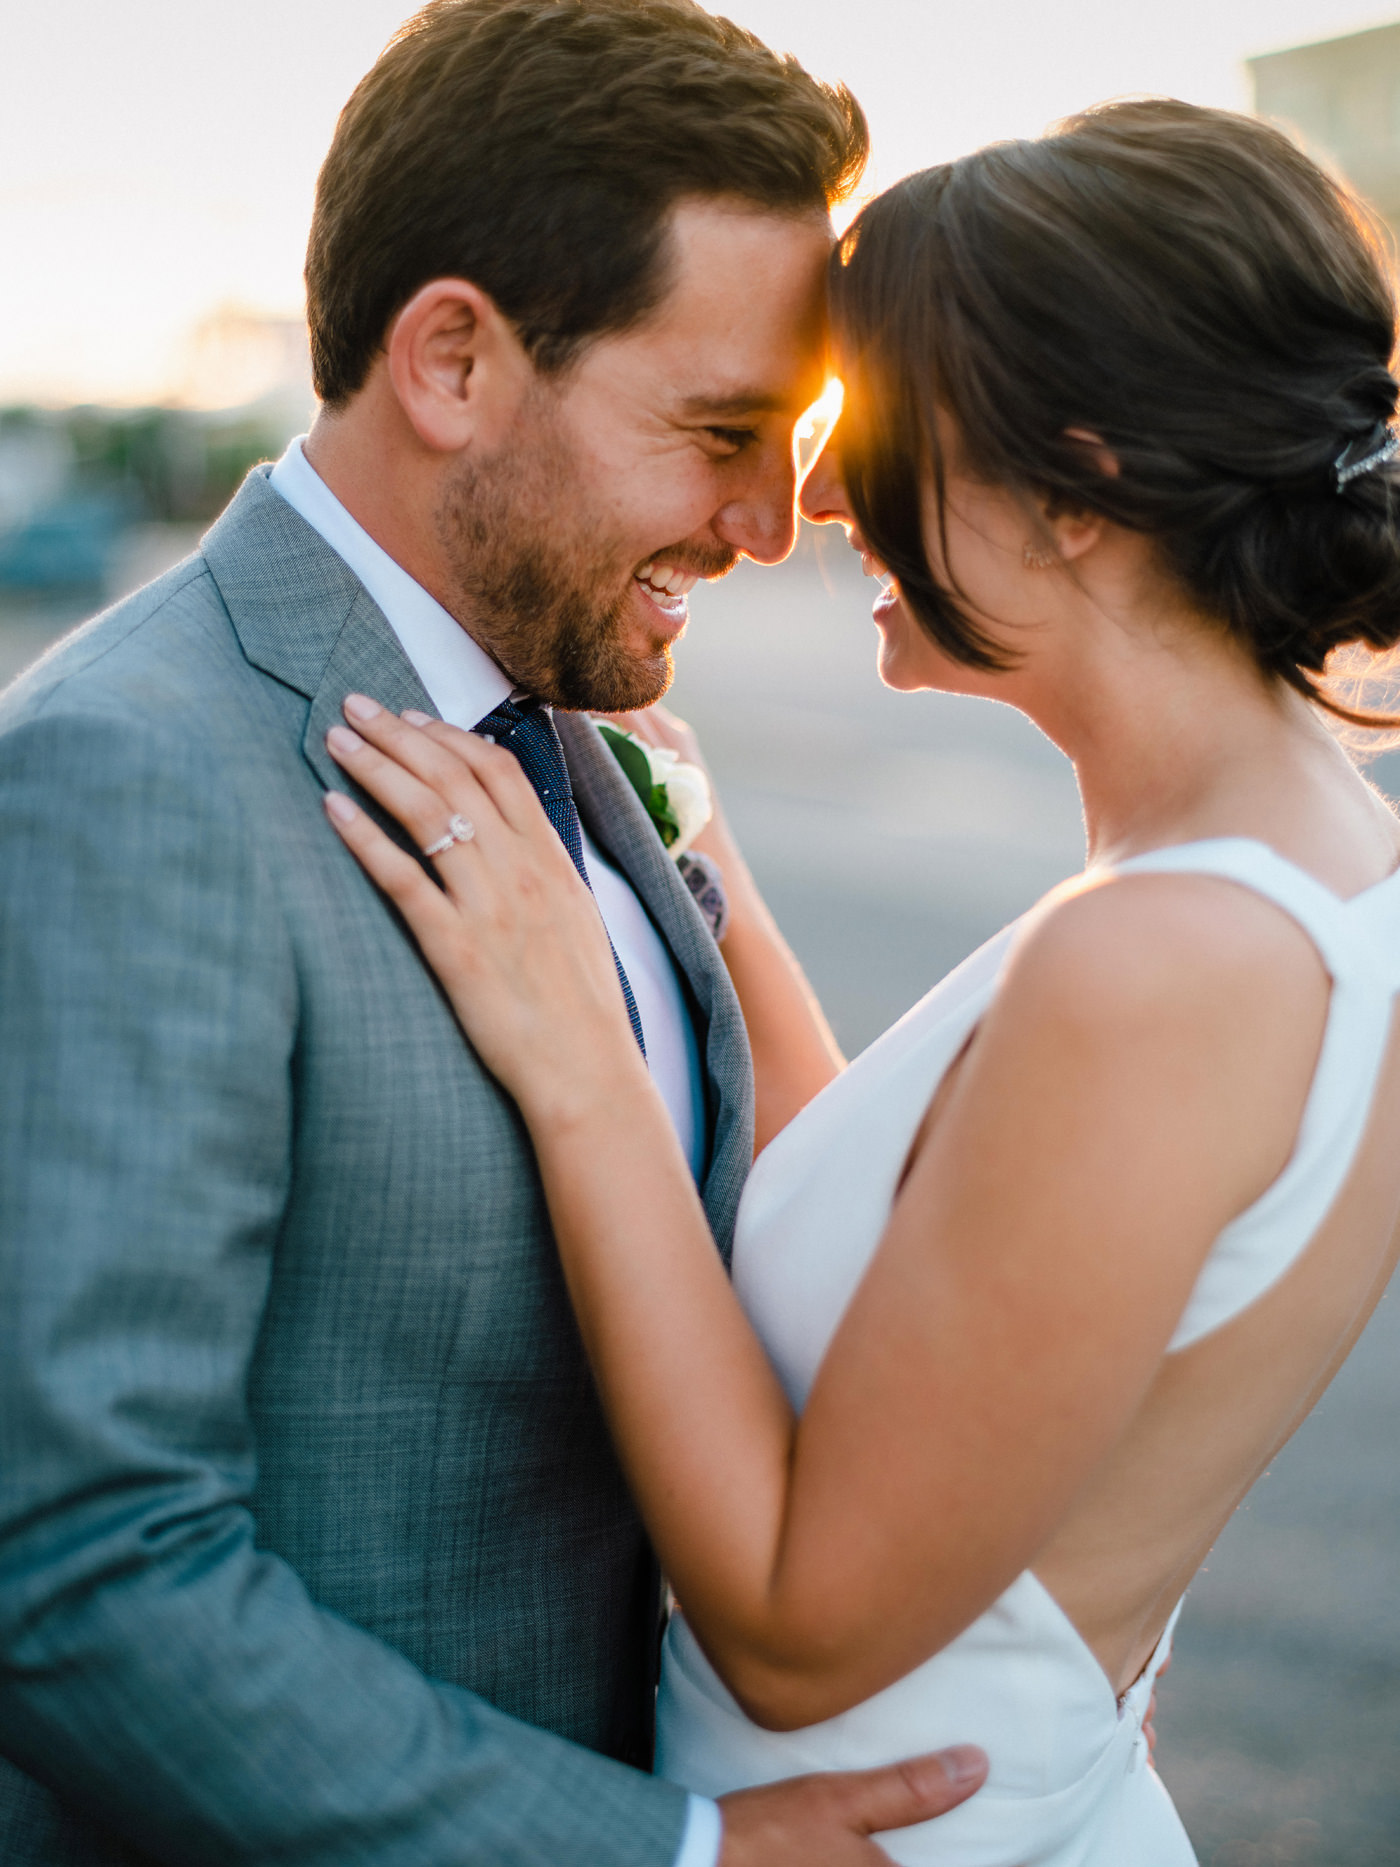 064-golden-hour-wedding-portraits-in-sodo-seattle-by-ryan-flynn.jpg